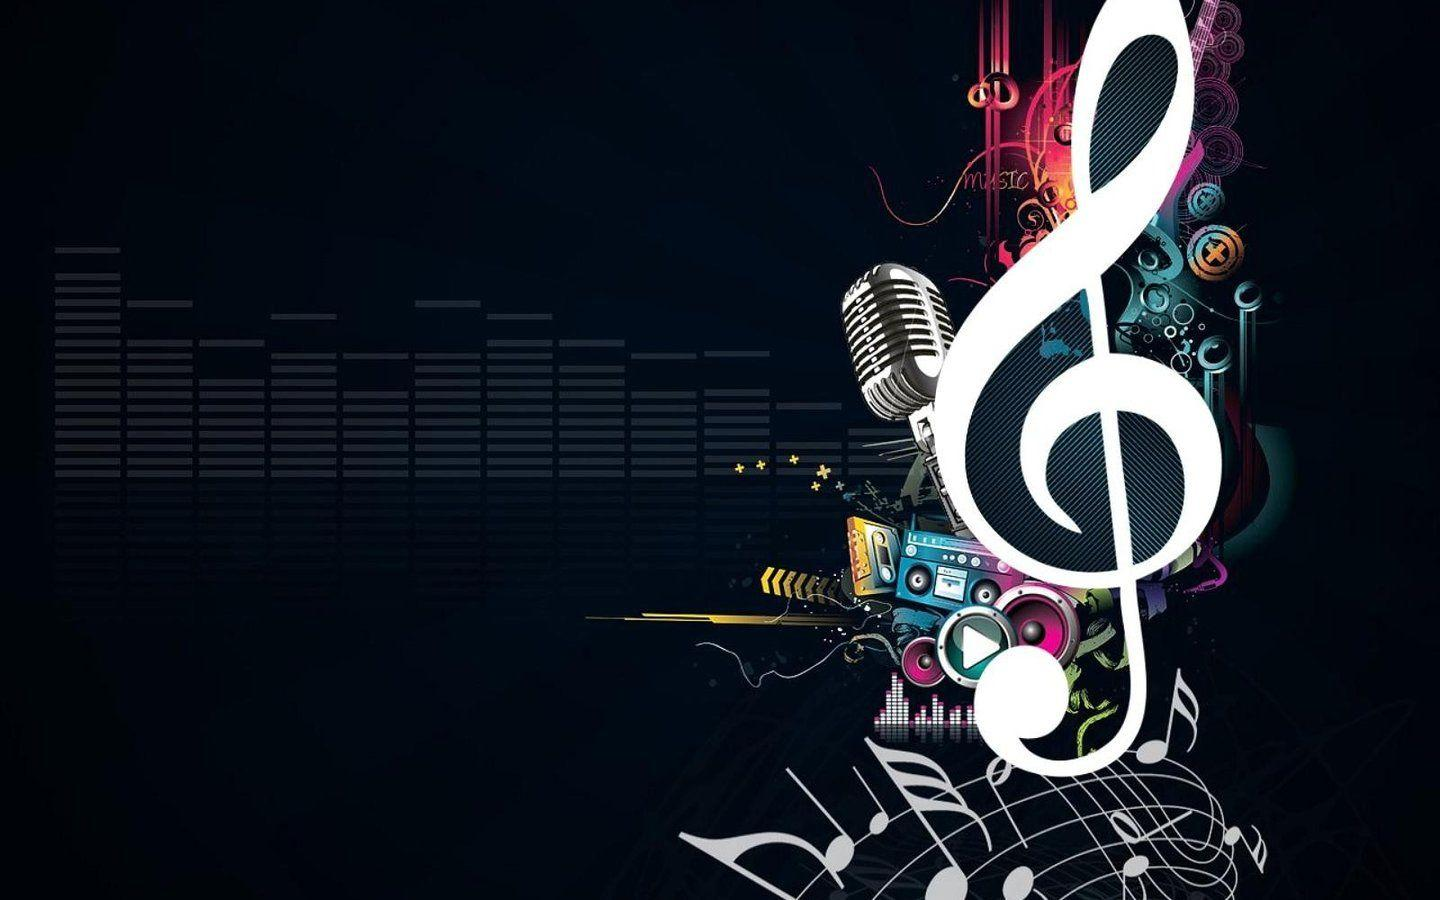 HD Wallpaper Abstract Music